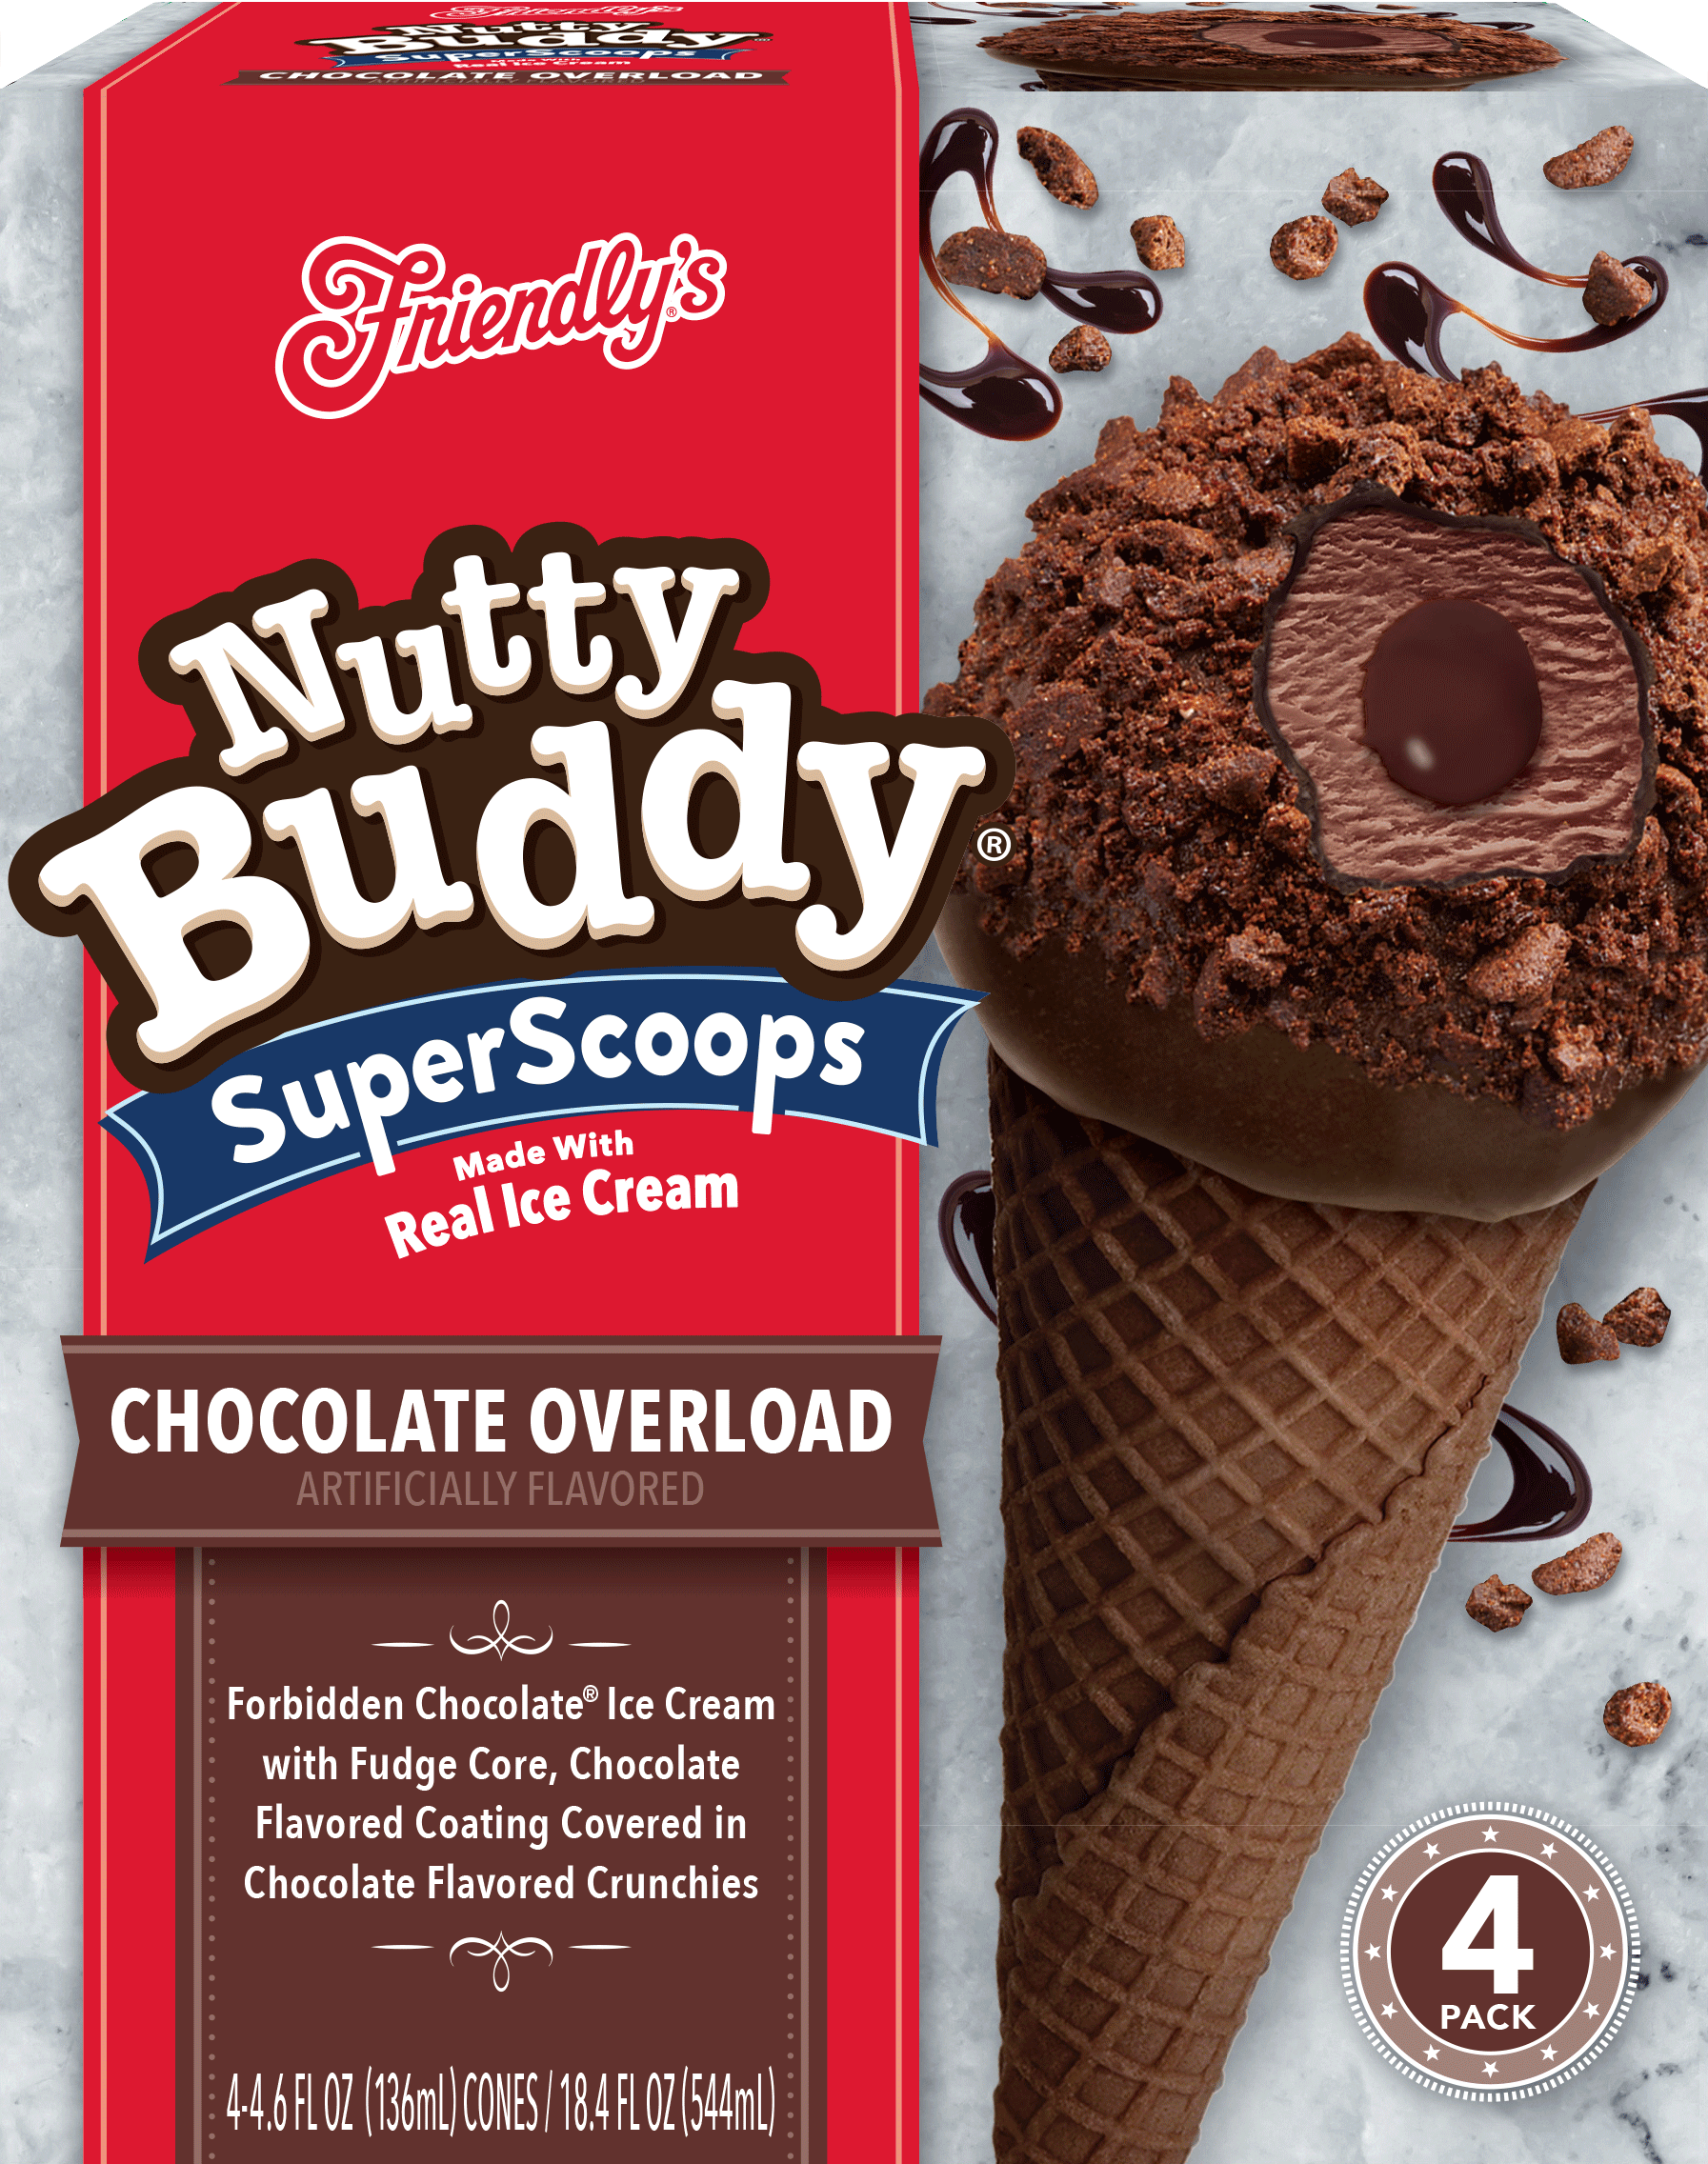 Chocolate Overload Nutty Buddy